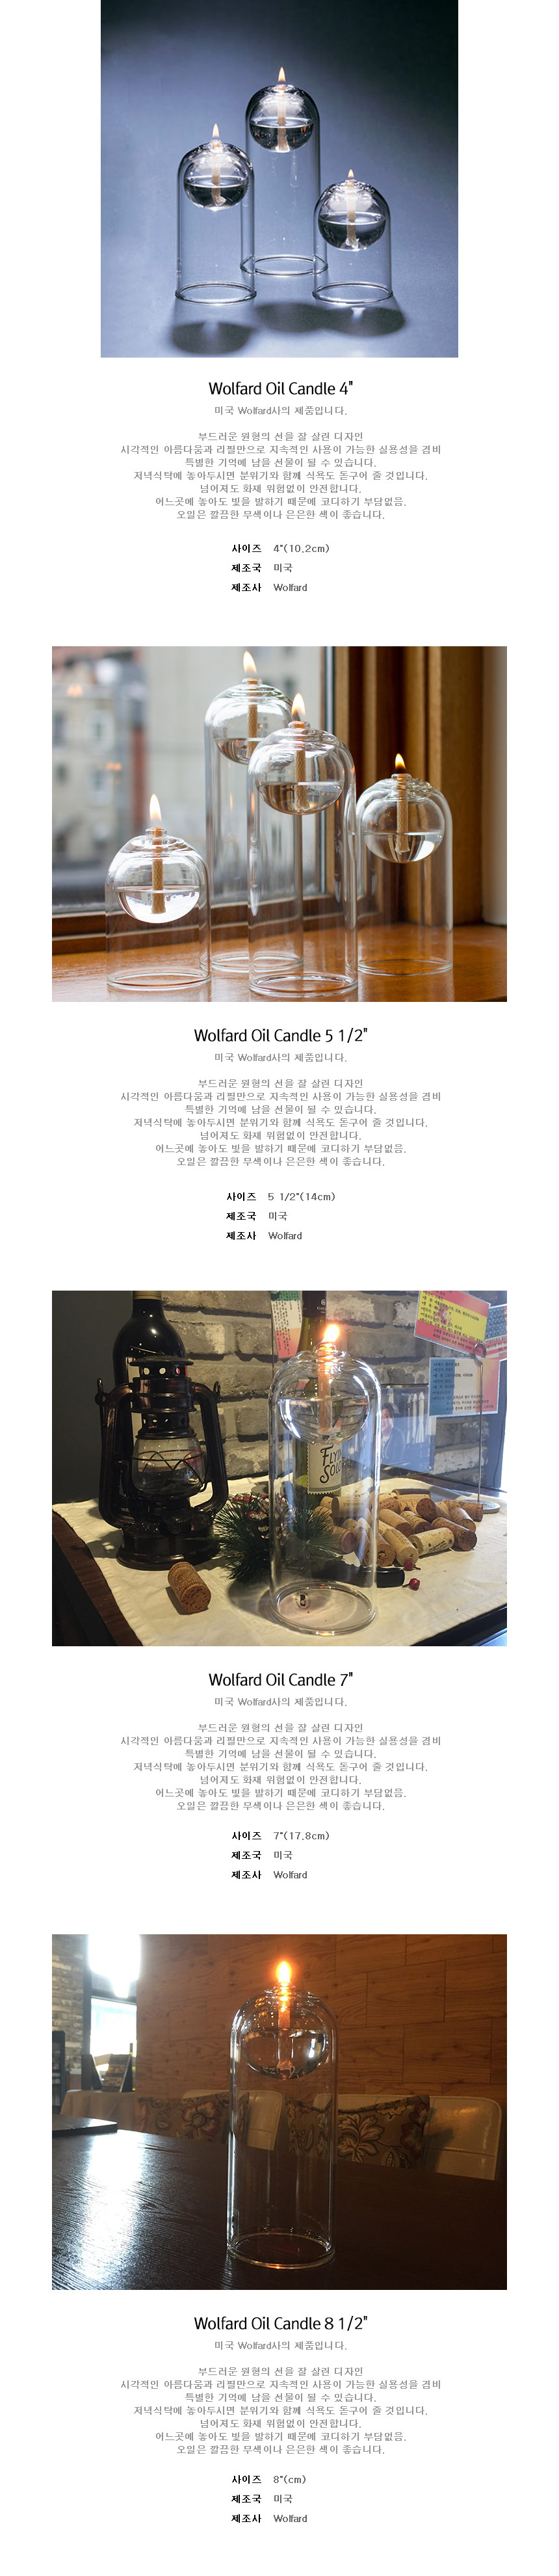 램프플러스 Wolfard Oil Candle